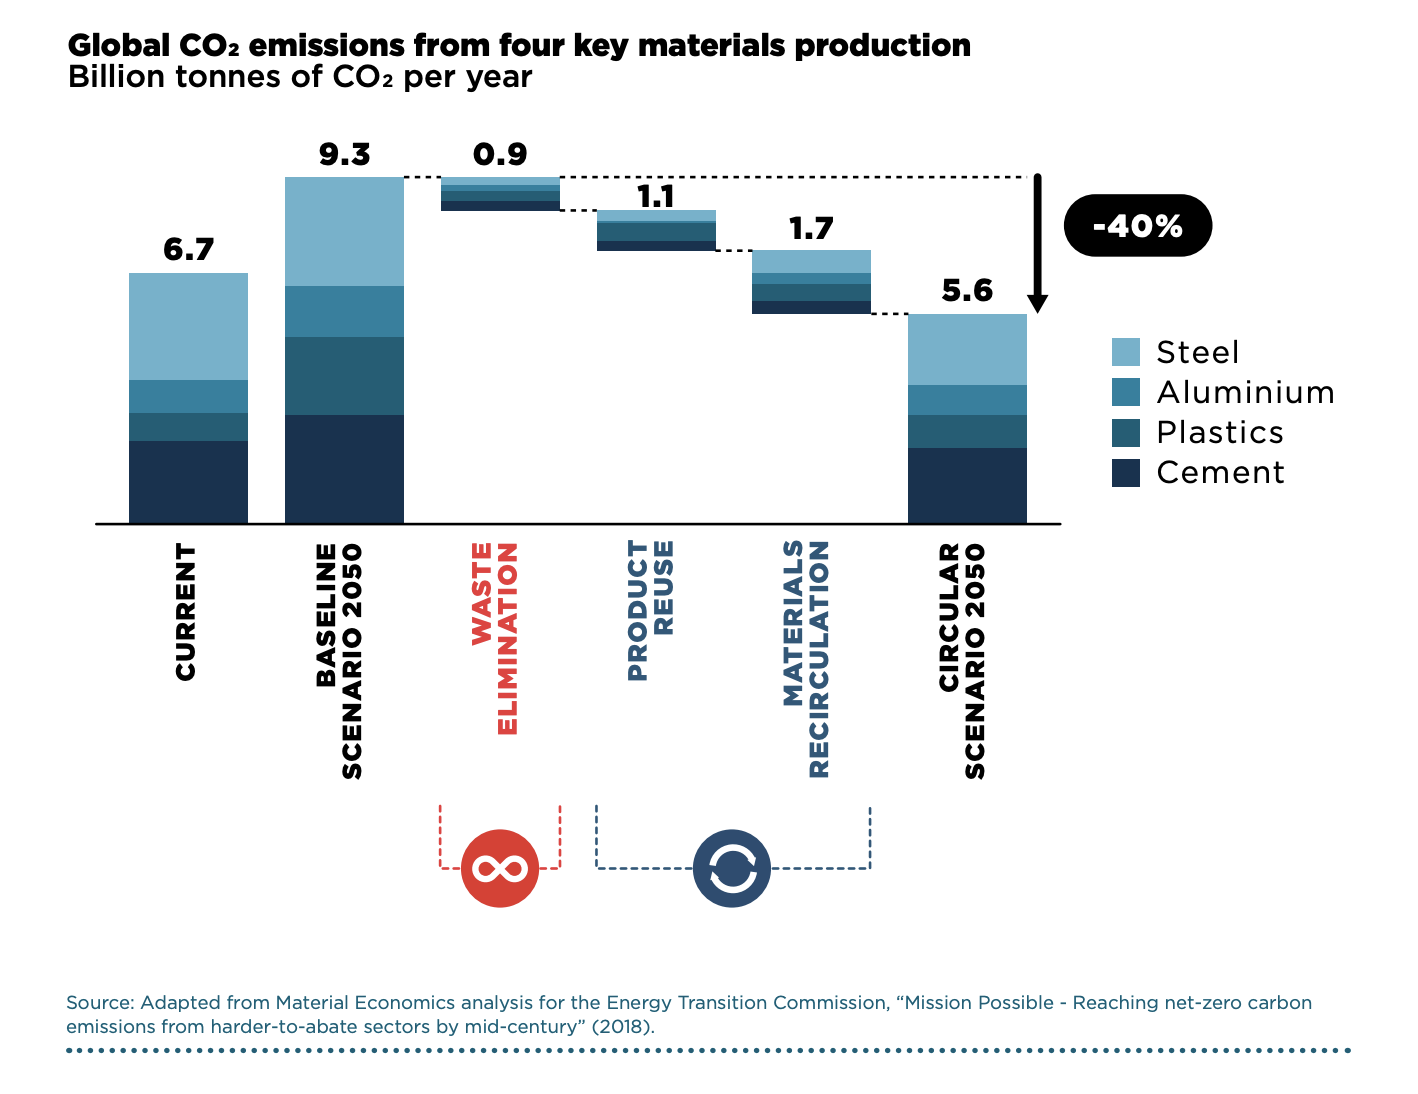 A circular economy could reduce GHG emissions from key materials by 40% in 2050